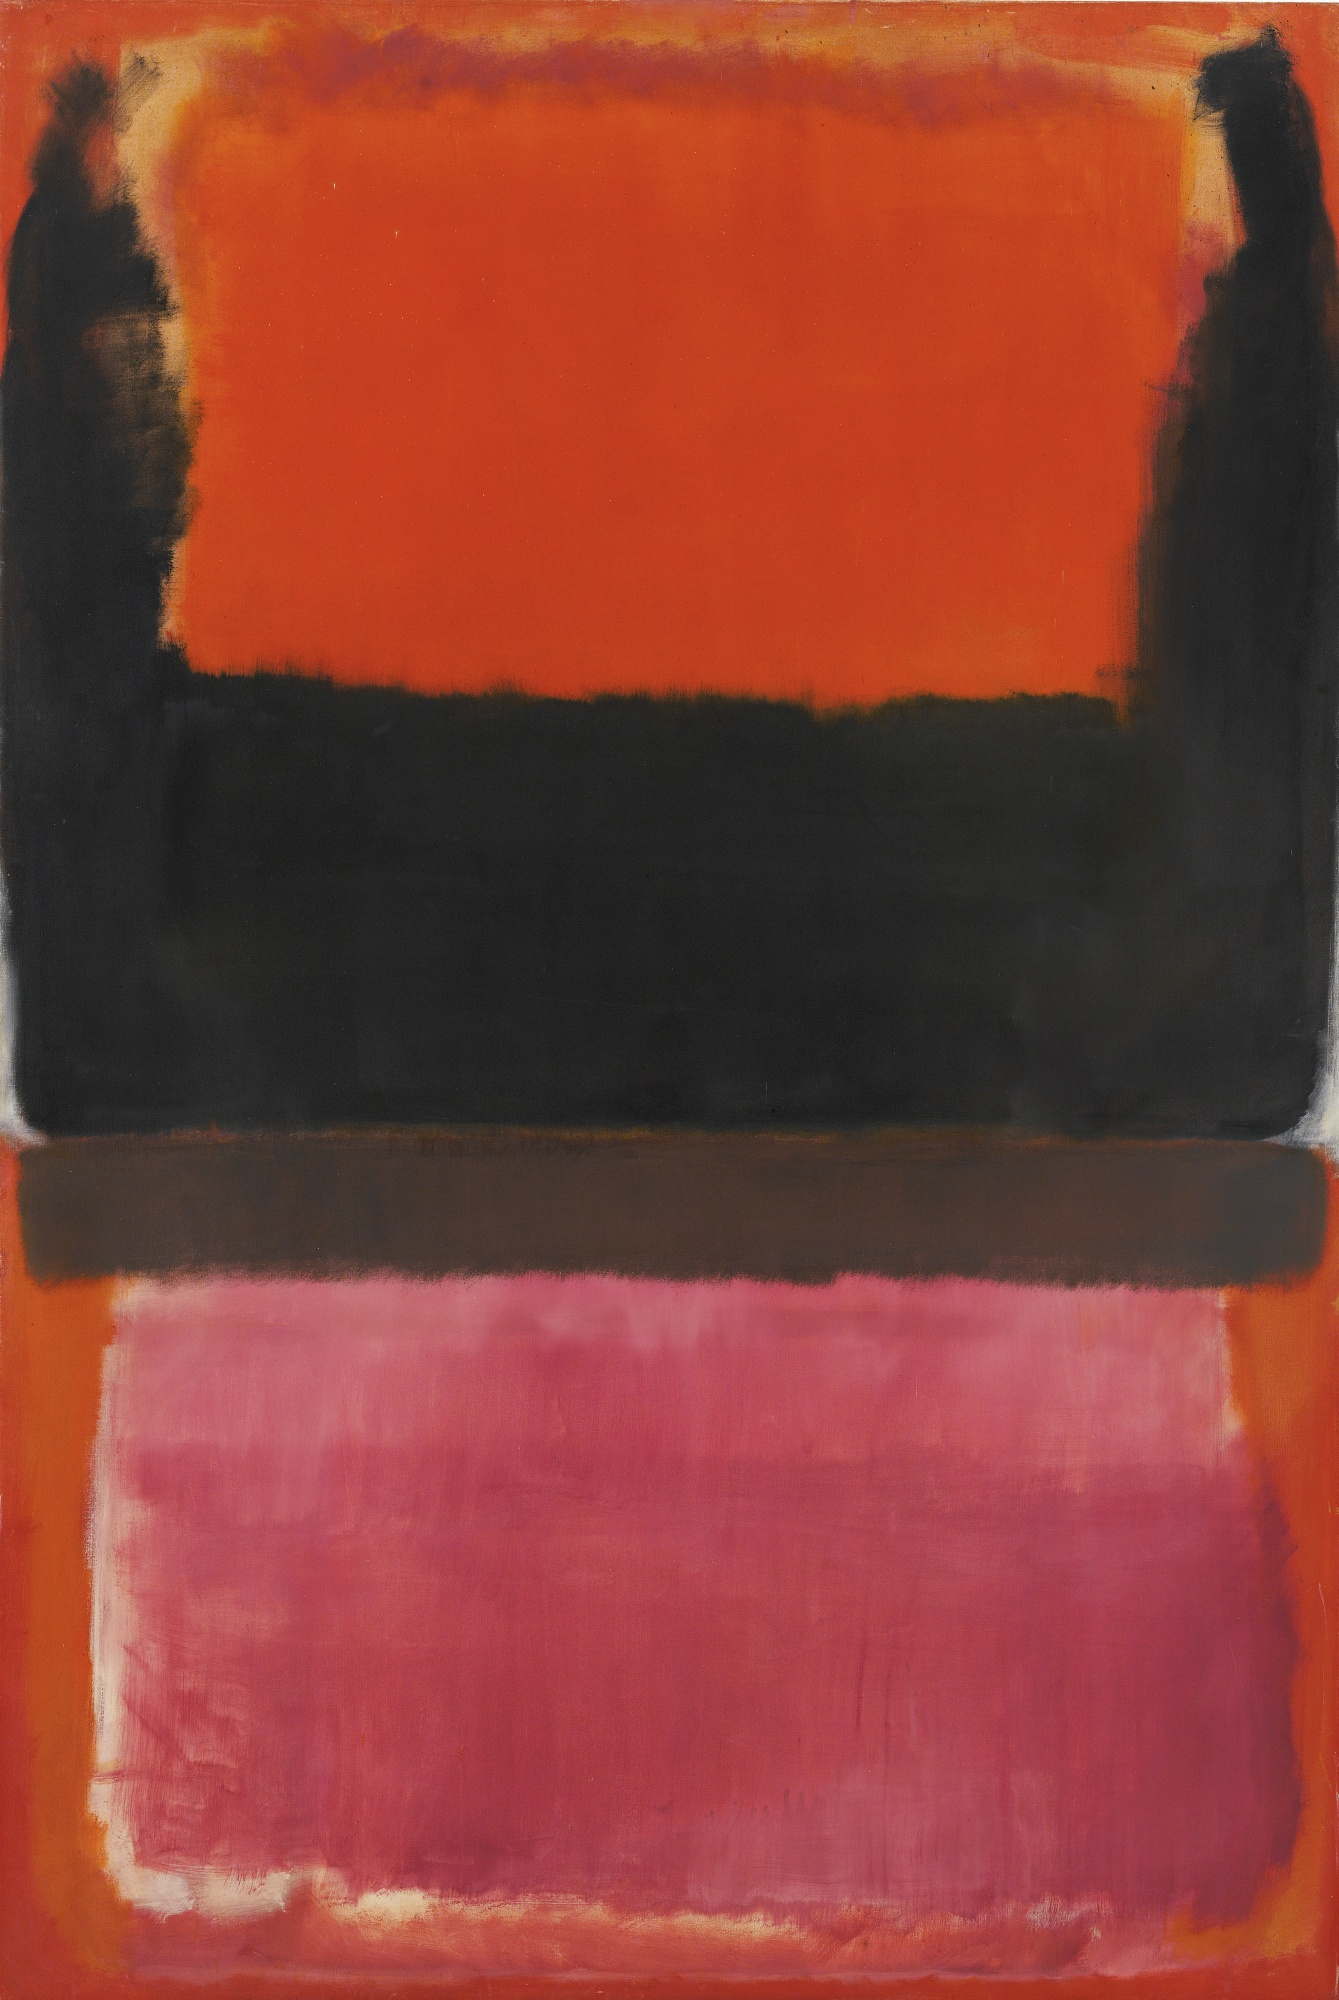 Mark-Rothko-No-21-Red-Brown-Black-and-Orange-1951-via-Sothebys